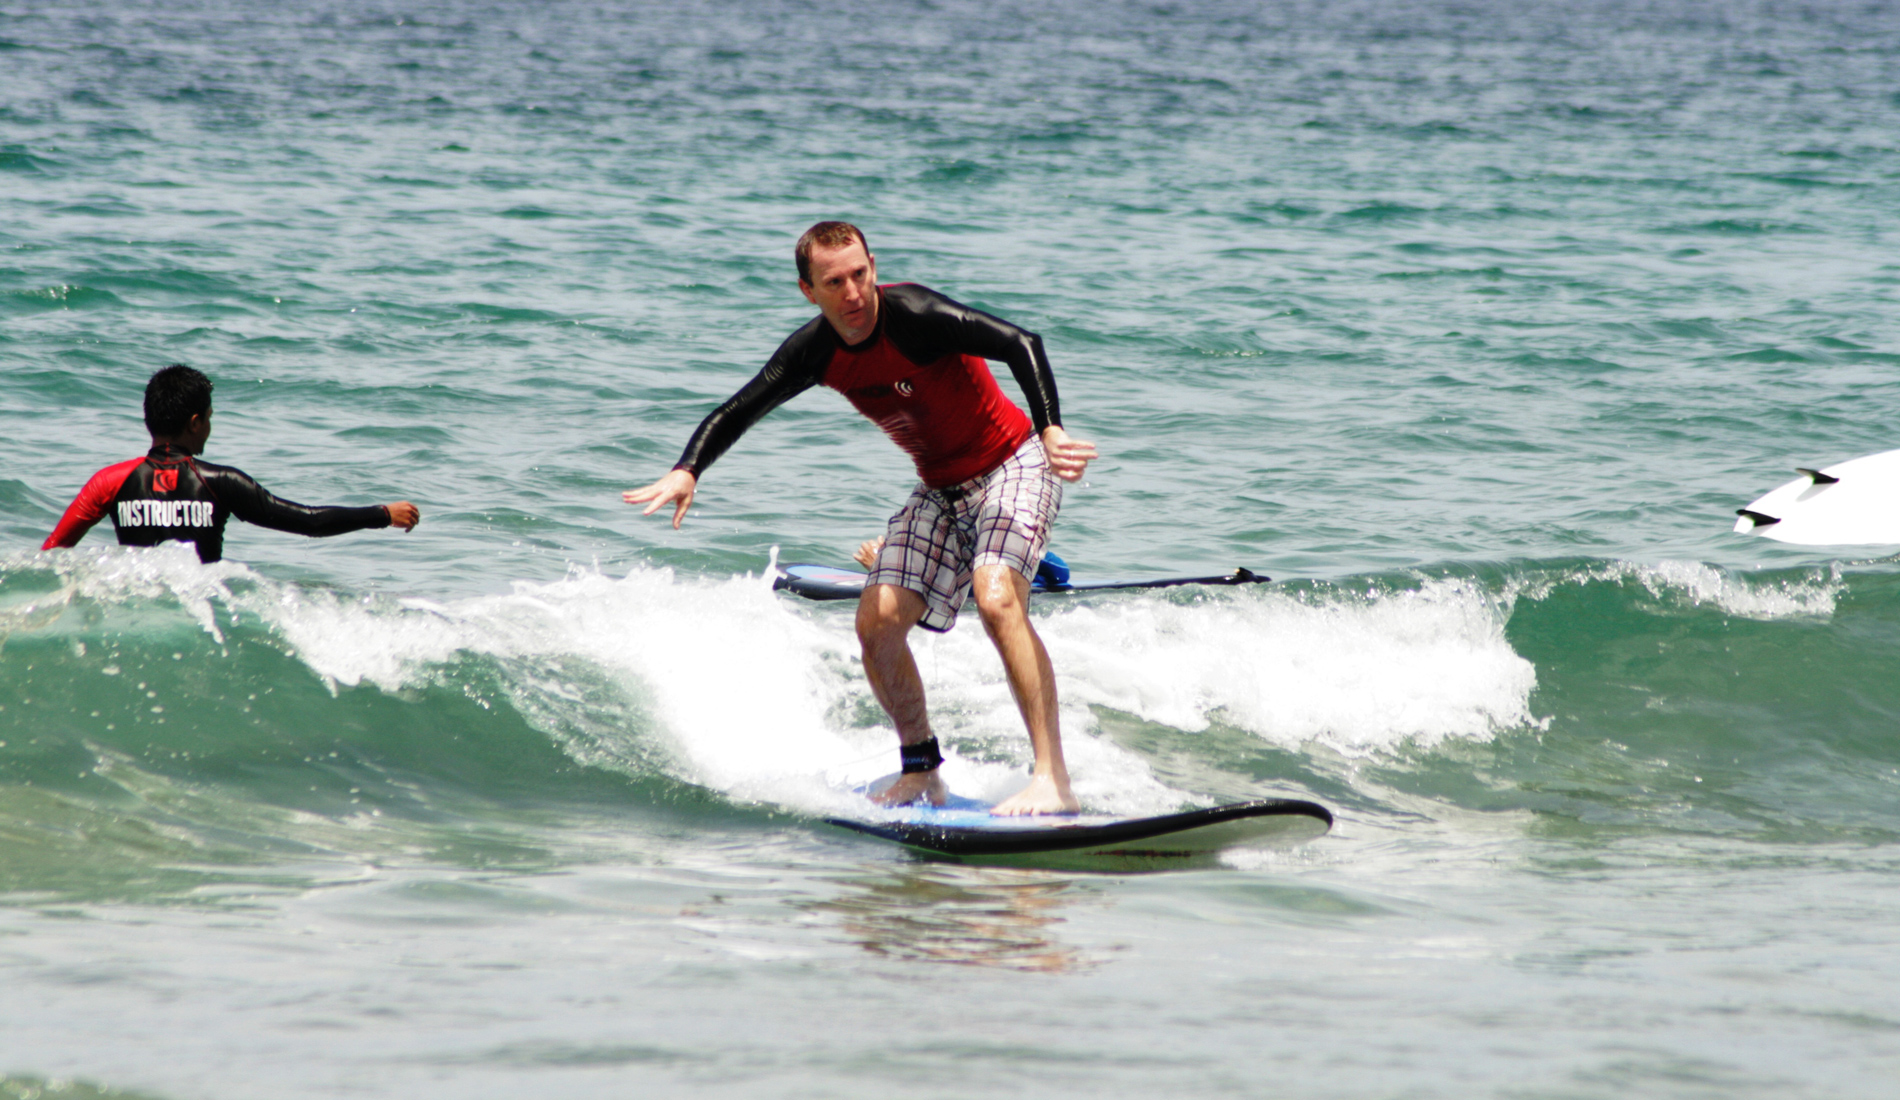 Bali Surfing Kuta Beach - Bali Tours Activities